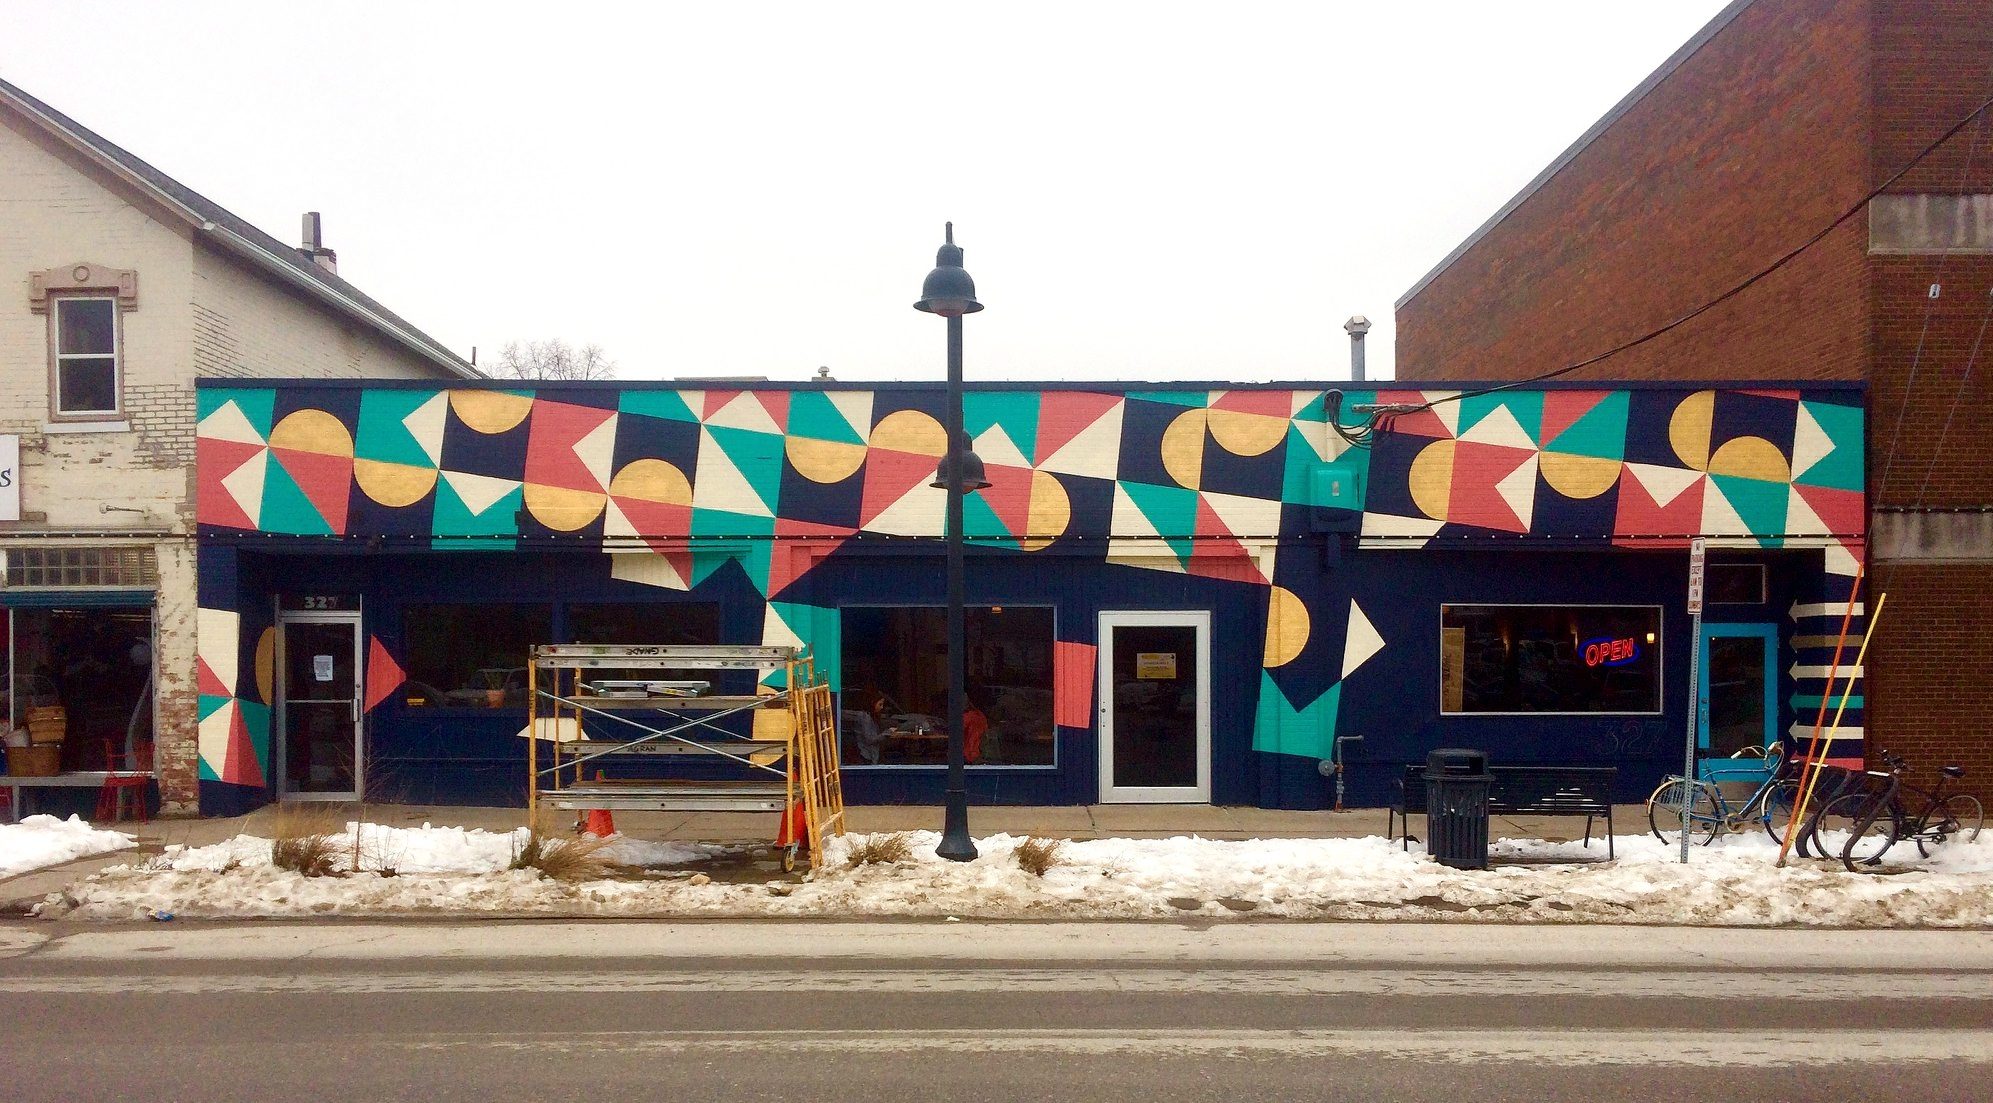 Restaurant façade wrap on Banditos Mexican restaurant in Iowa City. The restaurant formerly occupied only 1/2 of the building, and this project worked to unify the new facade and create a memorable, eye catching, and identifiable street presence.